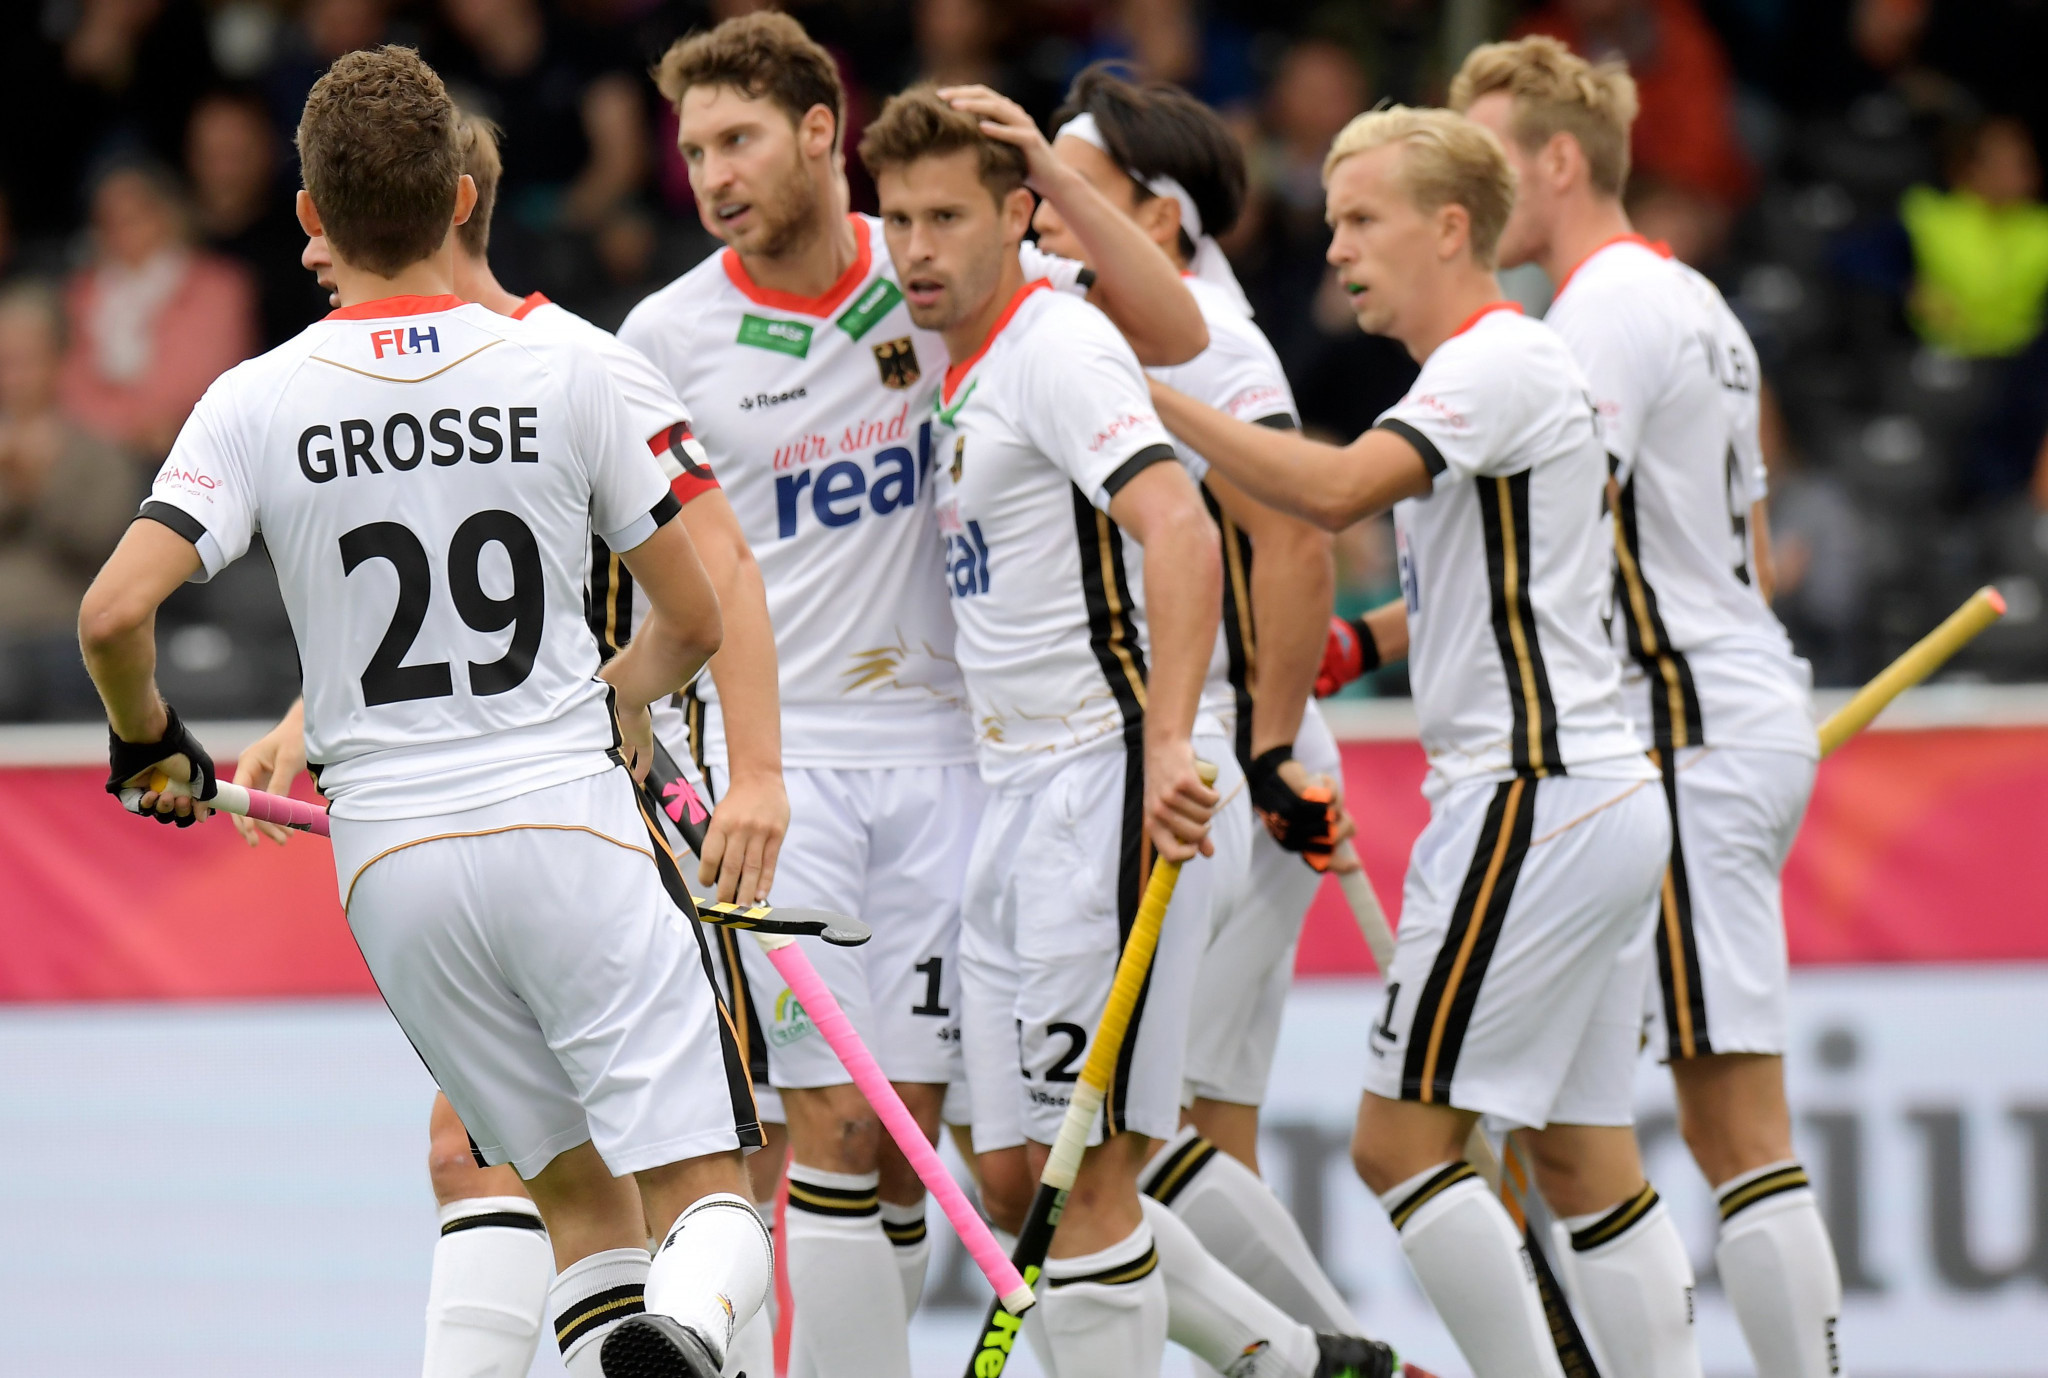 Germany started their men's EuroHockey Nations Championship campaign with a stunning 9-0 victory over Scotland ©Twitter/Eurohockey